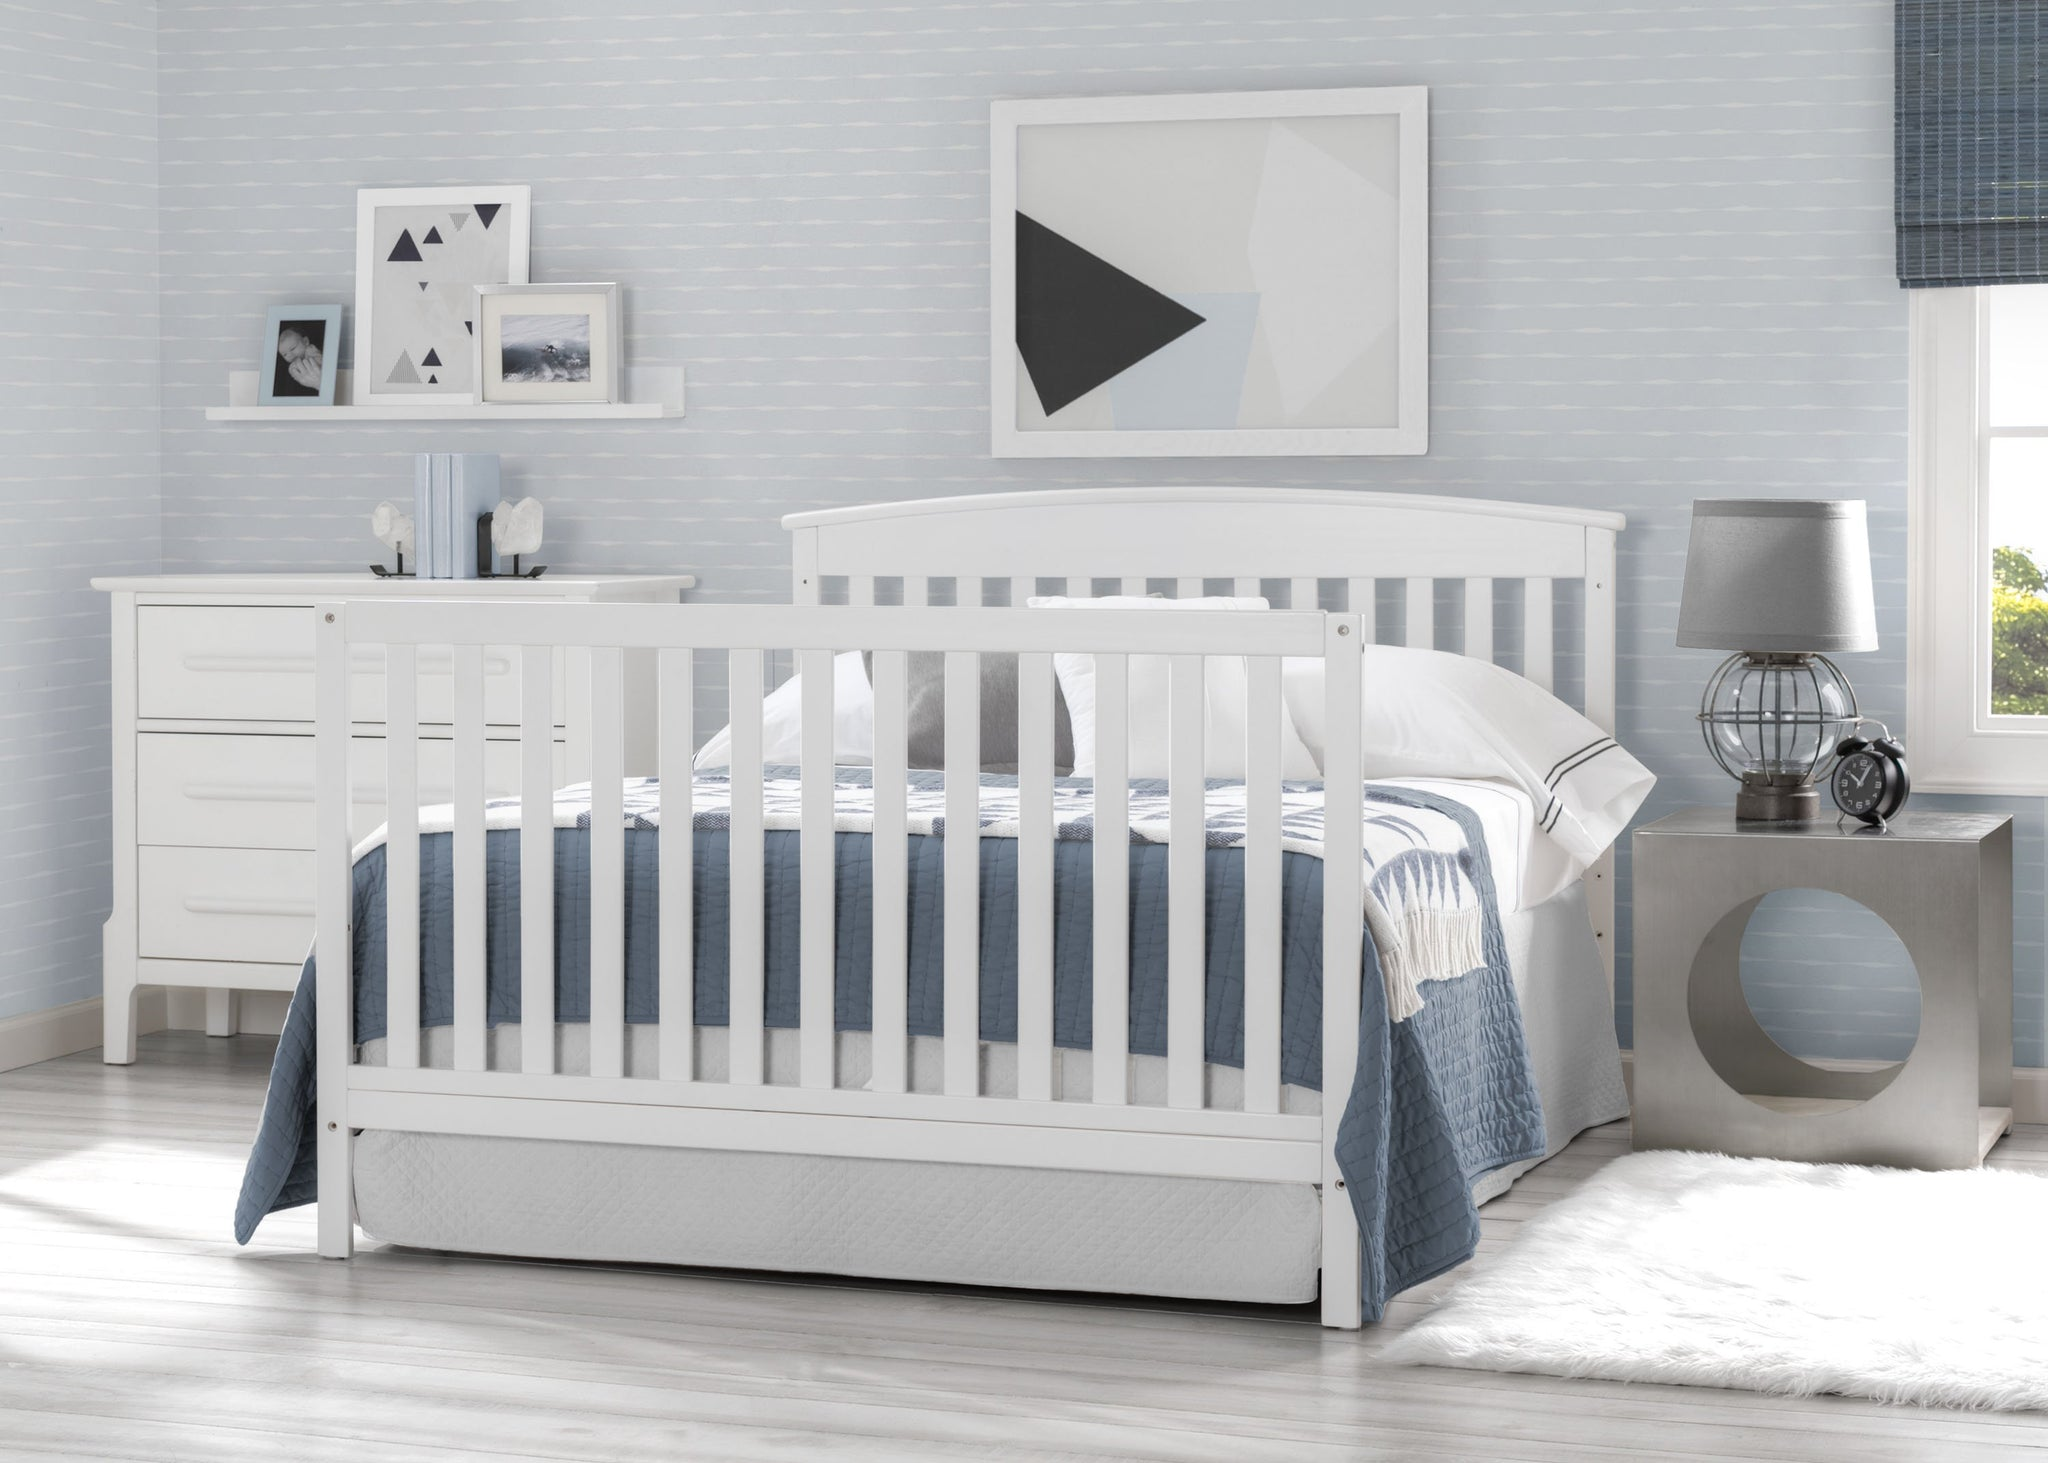 Delta Children Bianca White (130) Finley 4-in-1 Convertible Baby Crib Full Bed Roomshot a2a